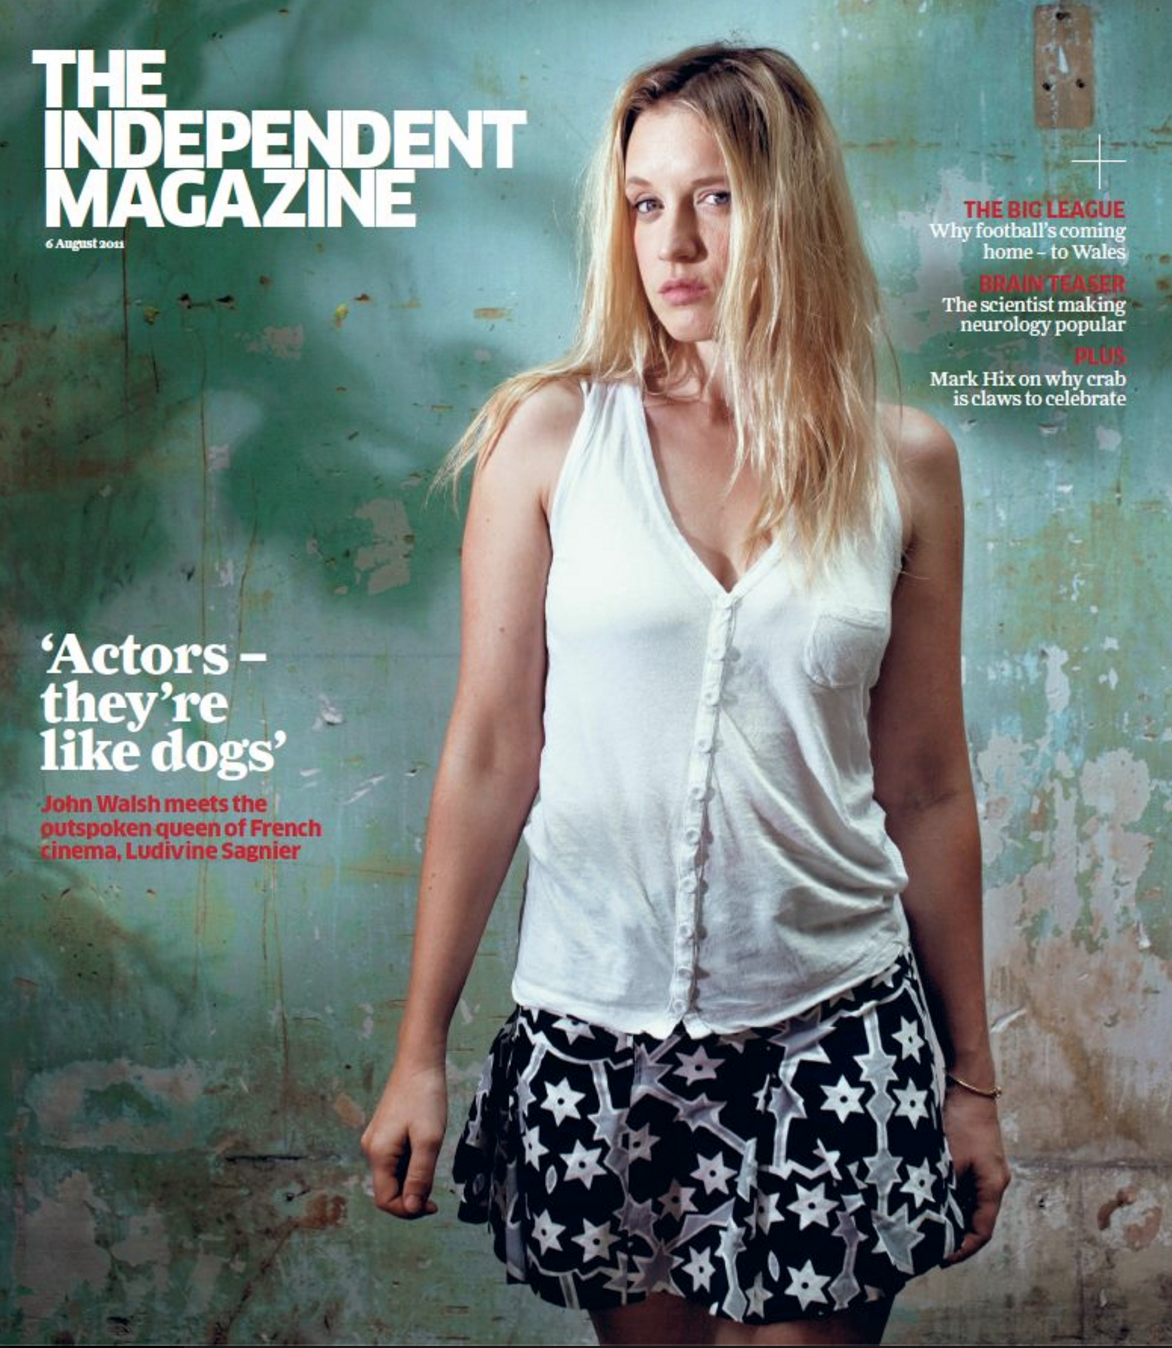 THE INDEPENDENT MAGAZINE